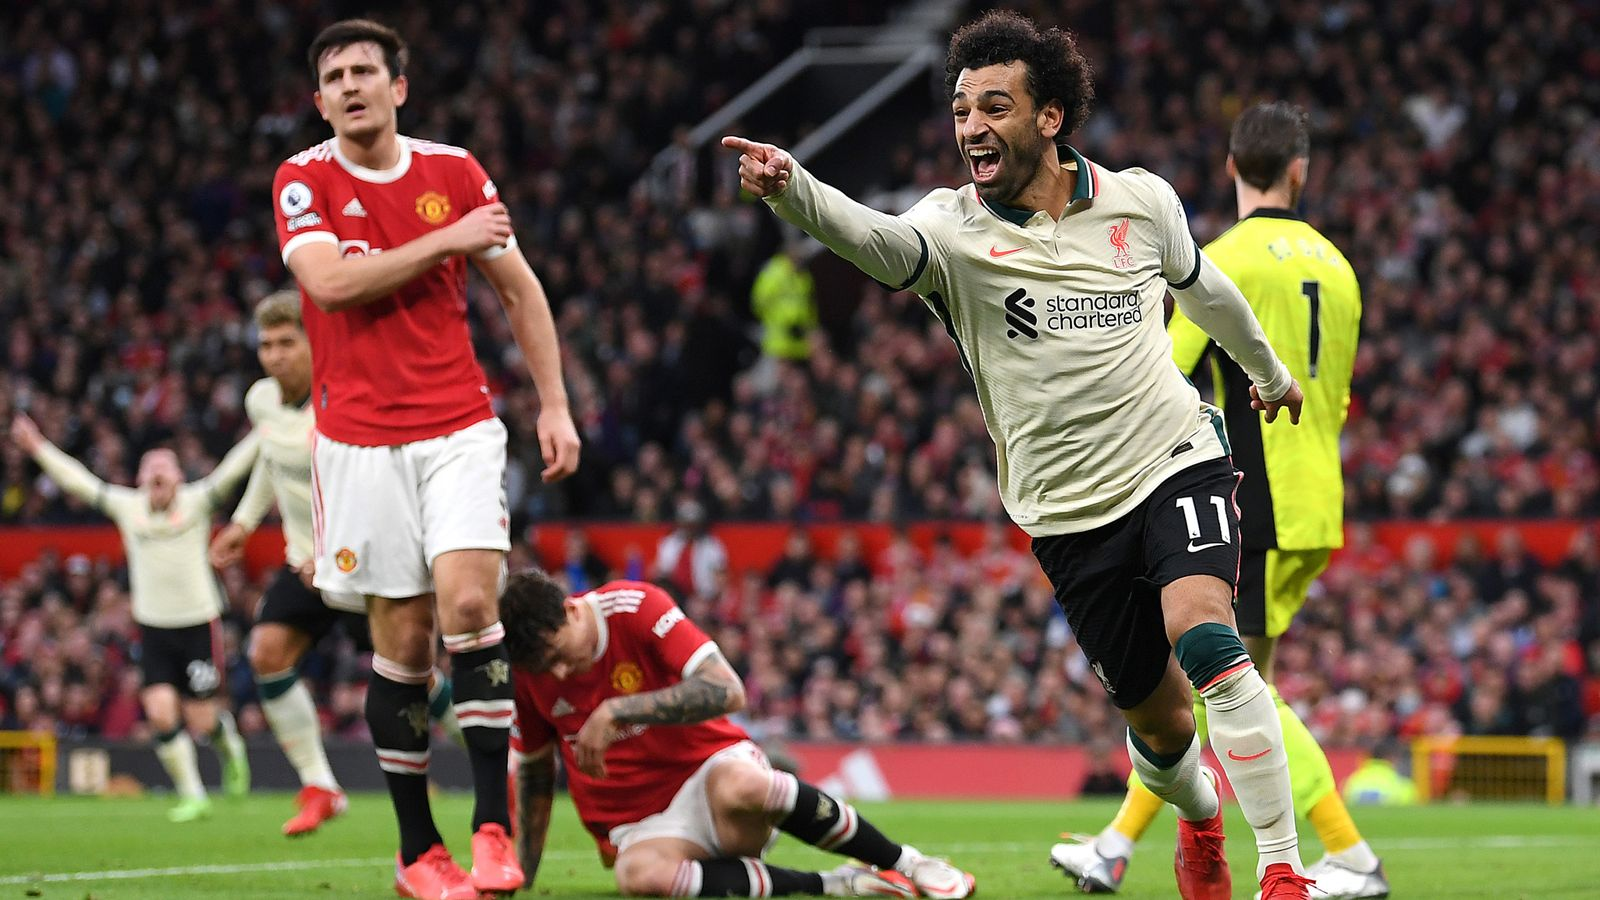 Premier League hits & misses: Man Utd's defensive horrorshow and Harry Kane's struggles allow rivals Liverpool and West Ham to celebrate